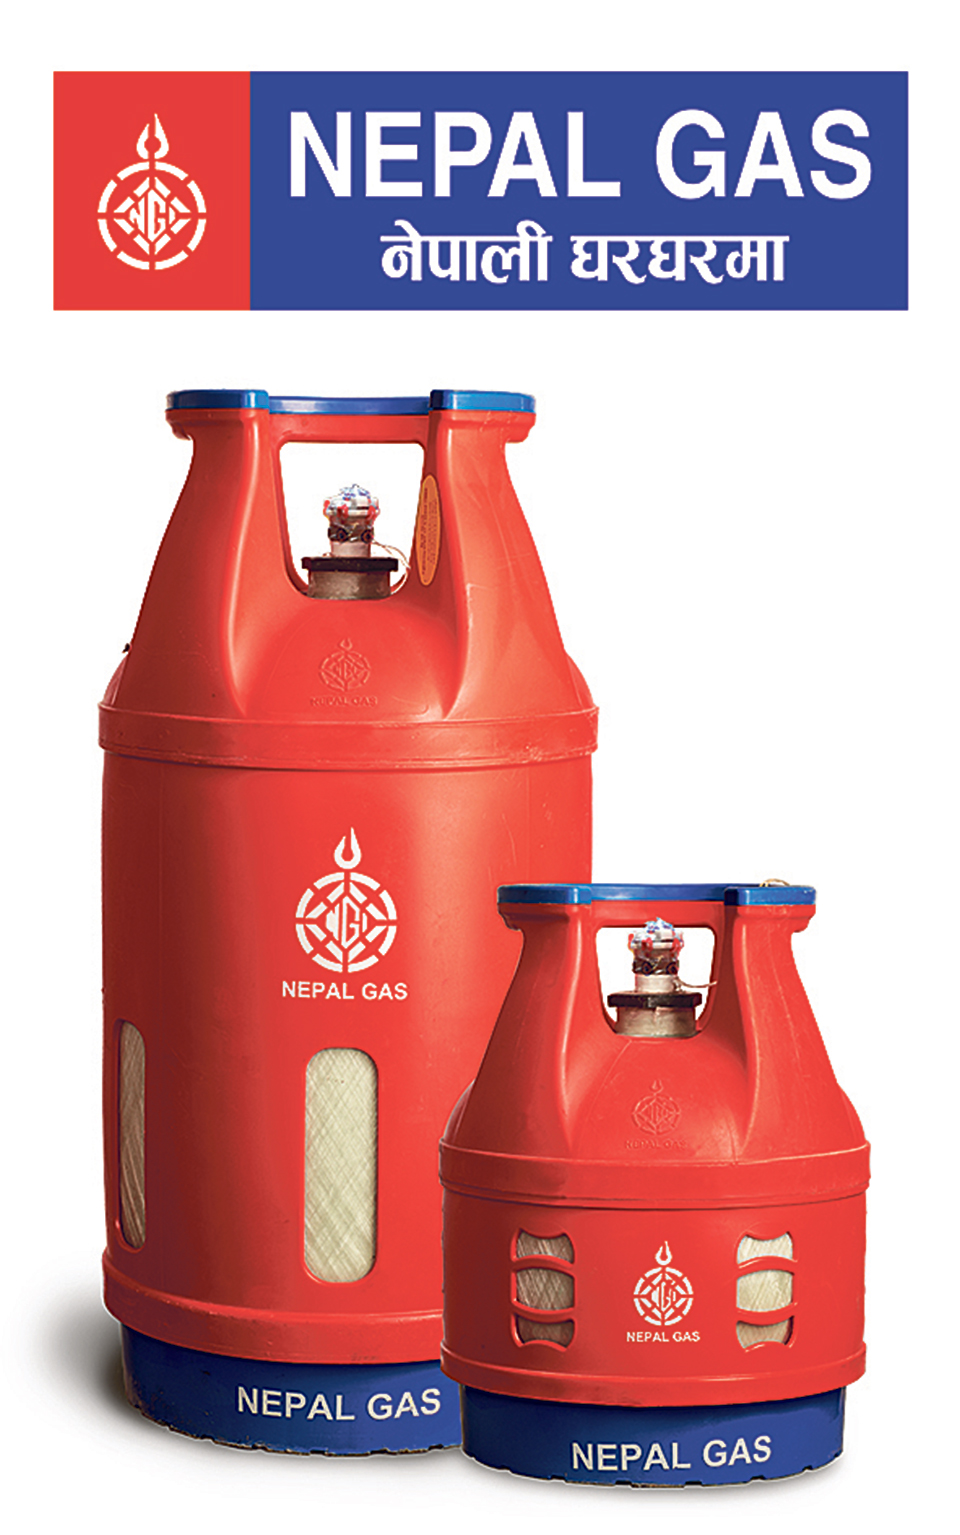 Nepal Gas unveils explosion-proof LPG composite cylinders